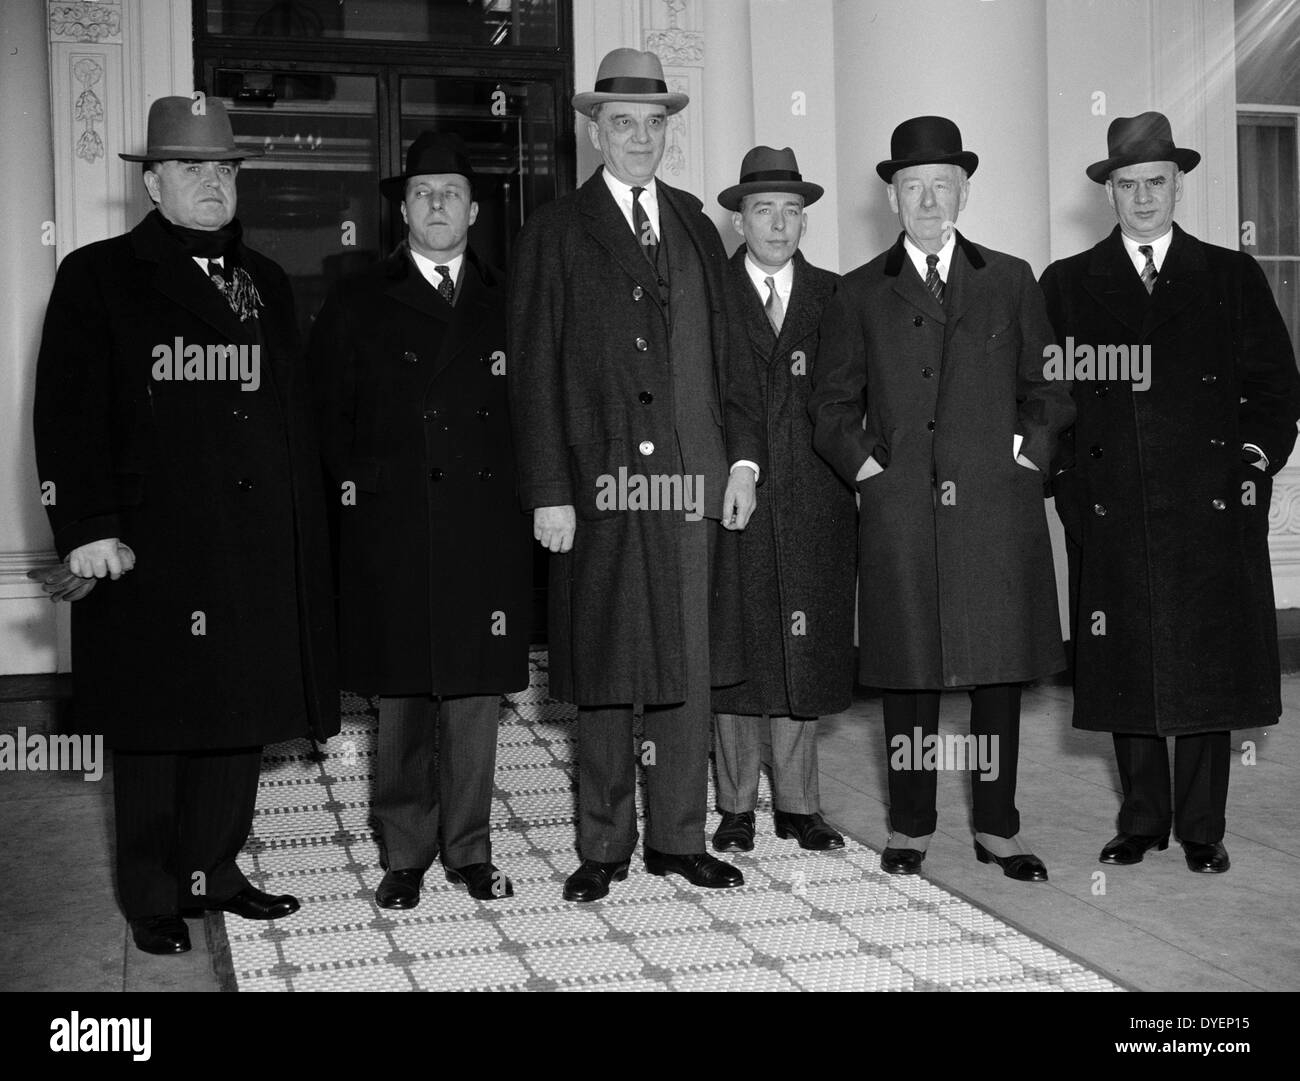 Capital and Labour leaders at White House. Washington, D.C., 19380101 - Stock Image